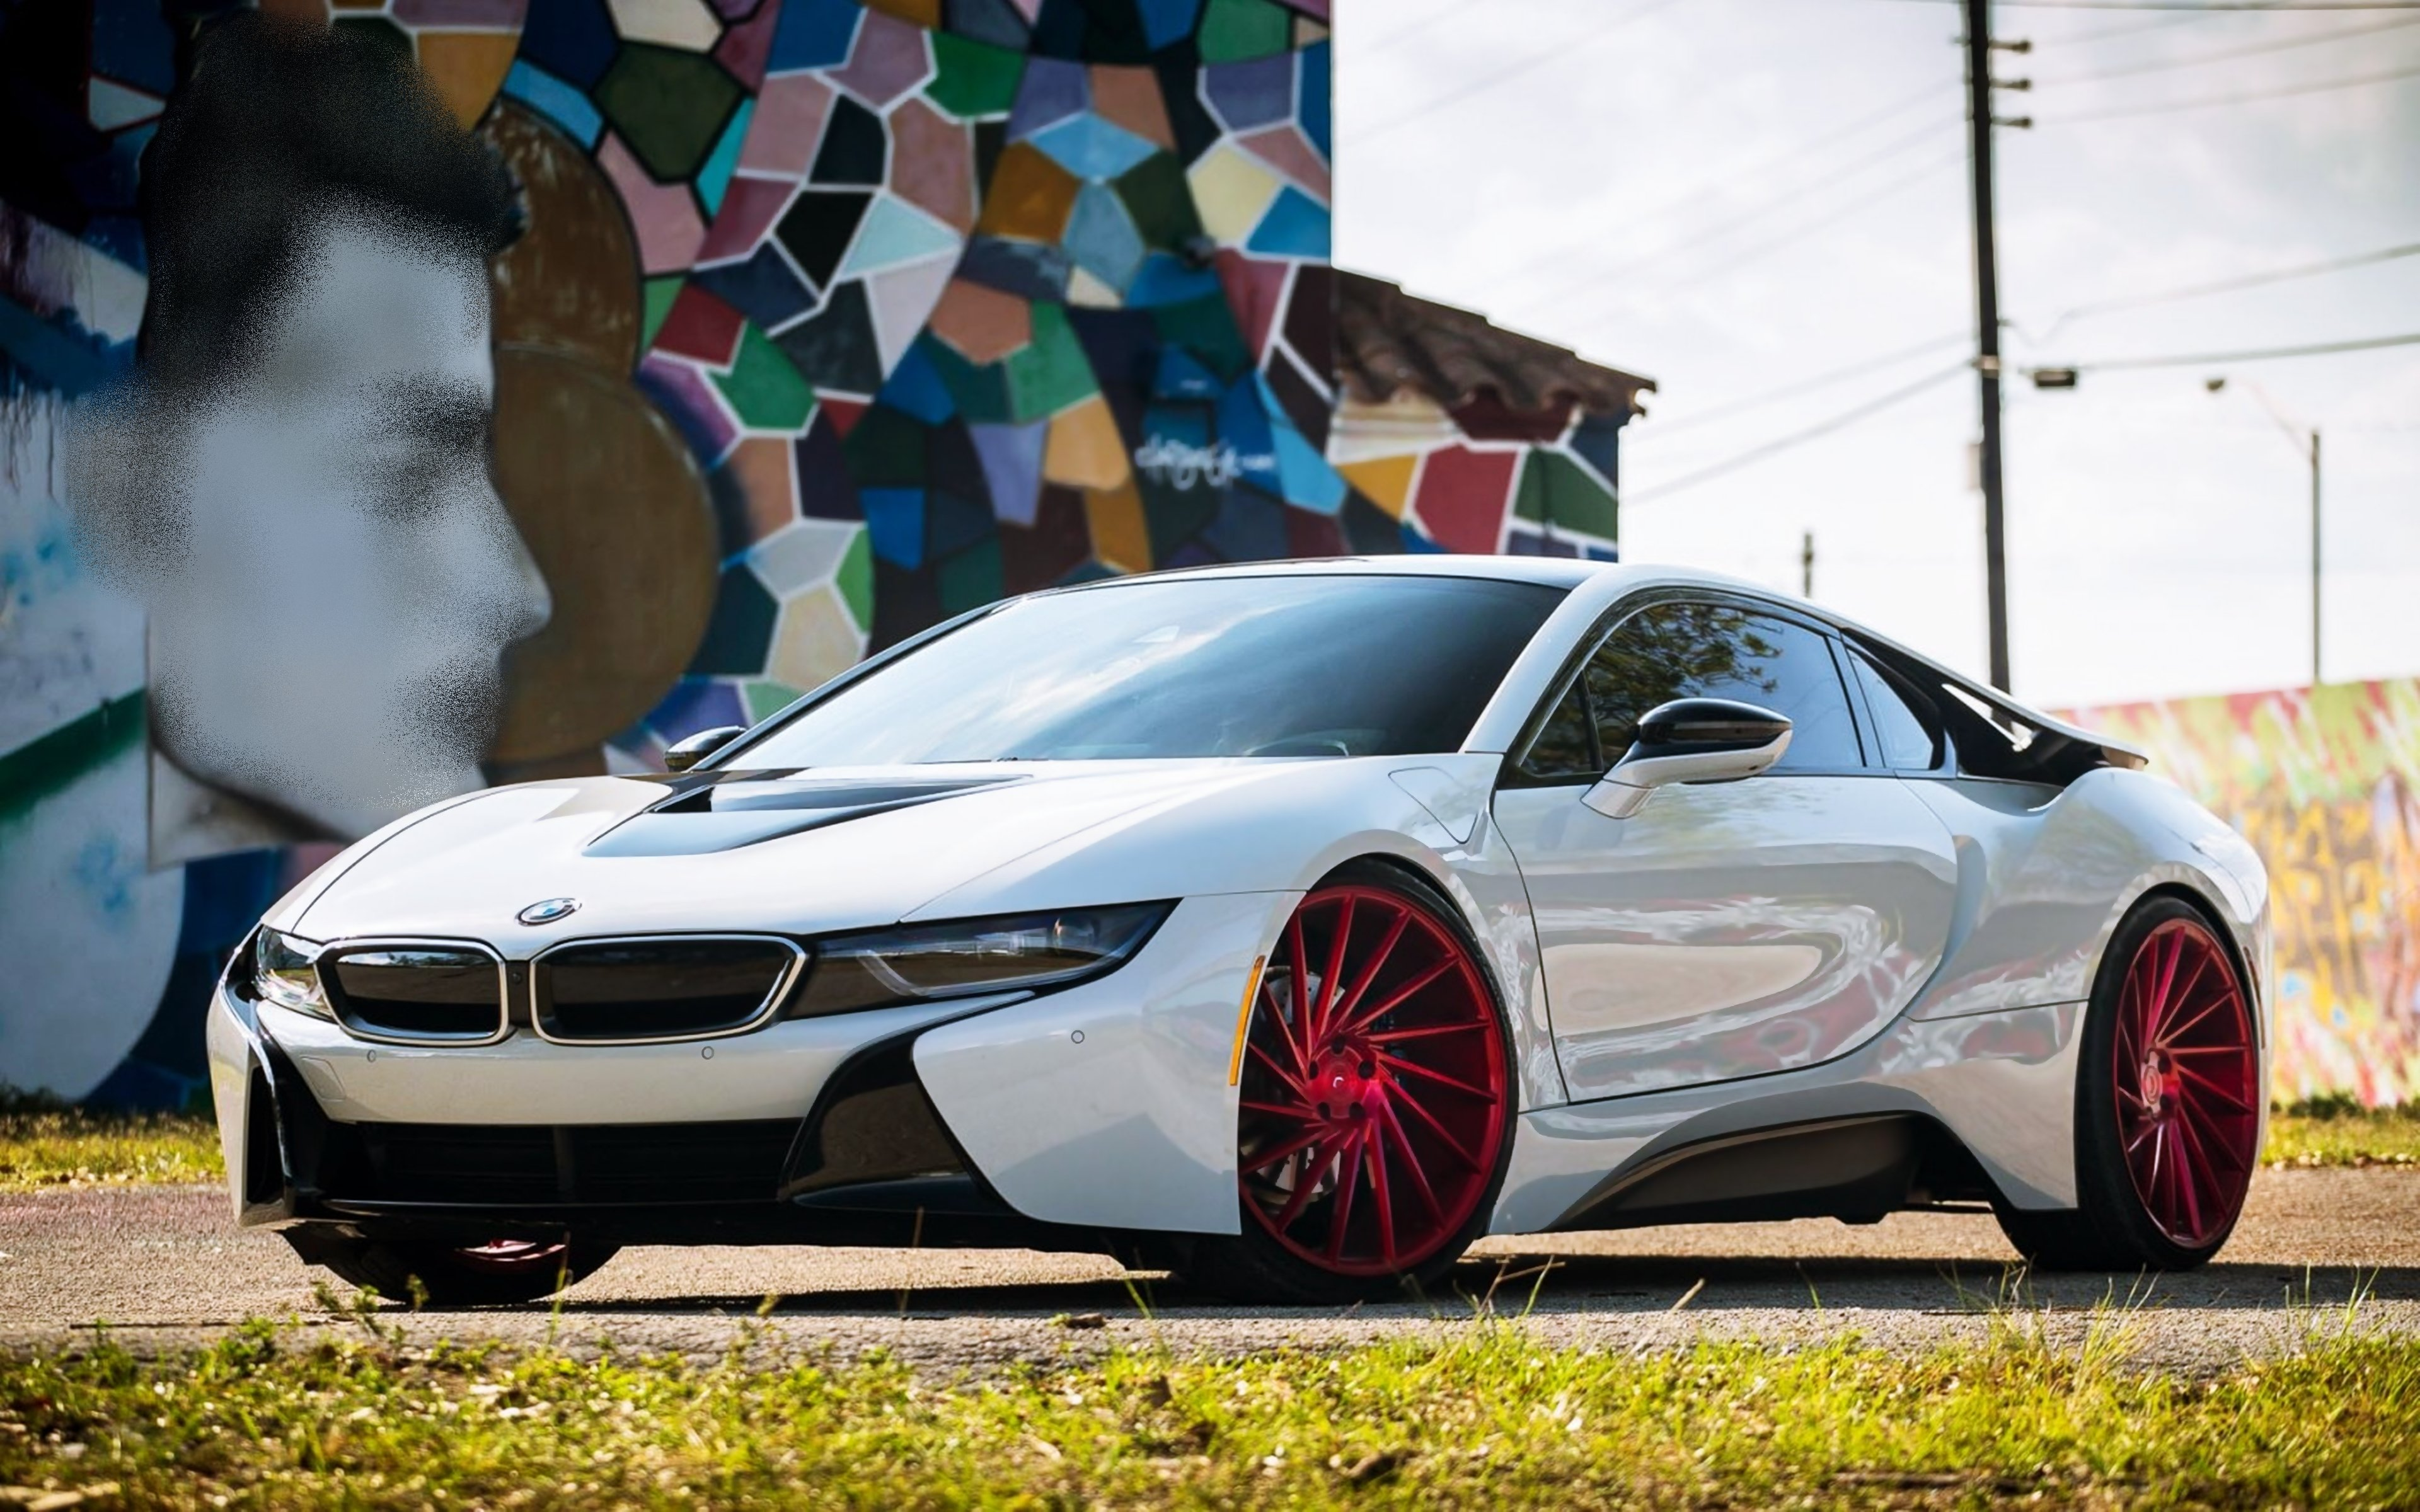 Bmw I8 Electro Cars Tuning White German Wall Drawing City Town Speed